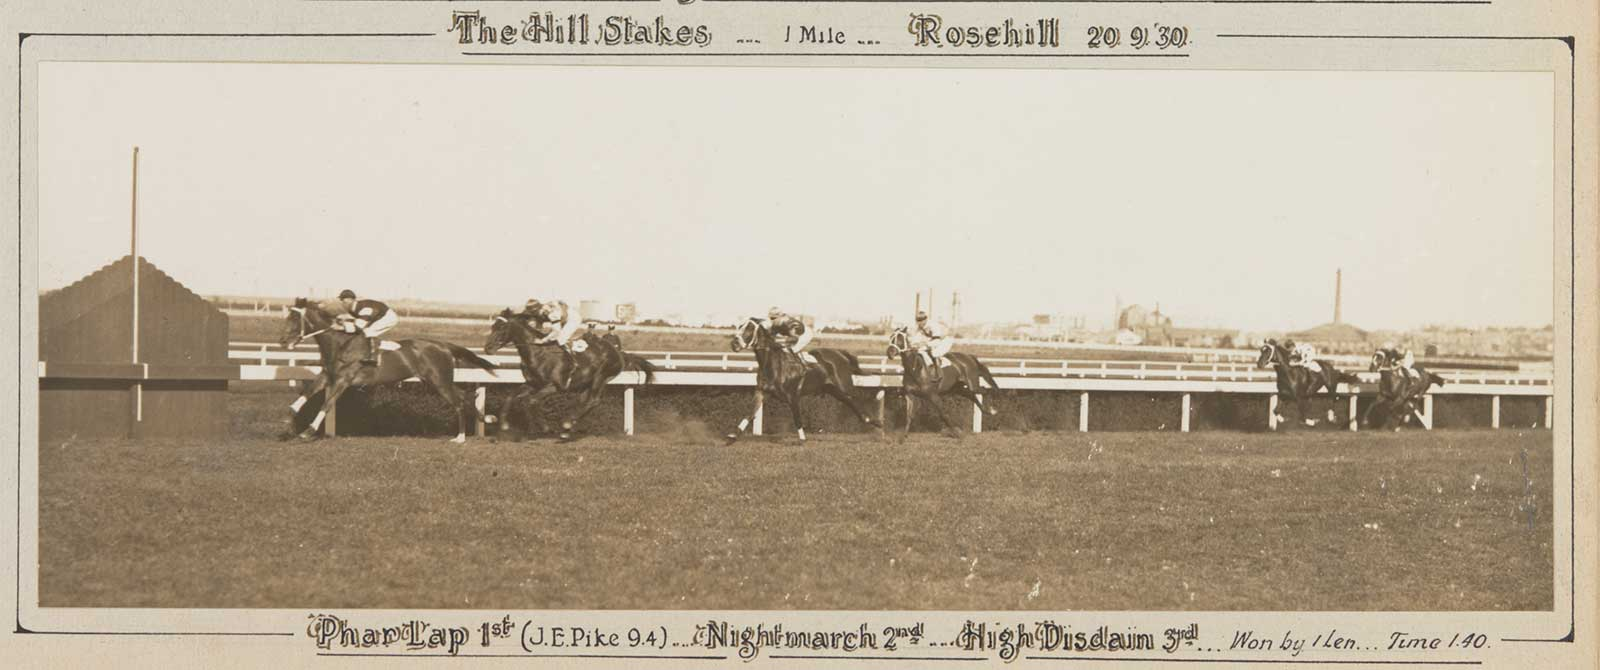 A black and white photo of Phar Lap winning the Hill Stakes, 1930. - click to view larger image